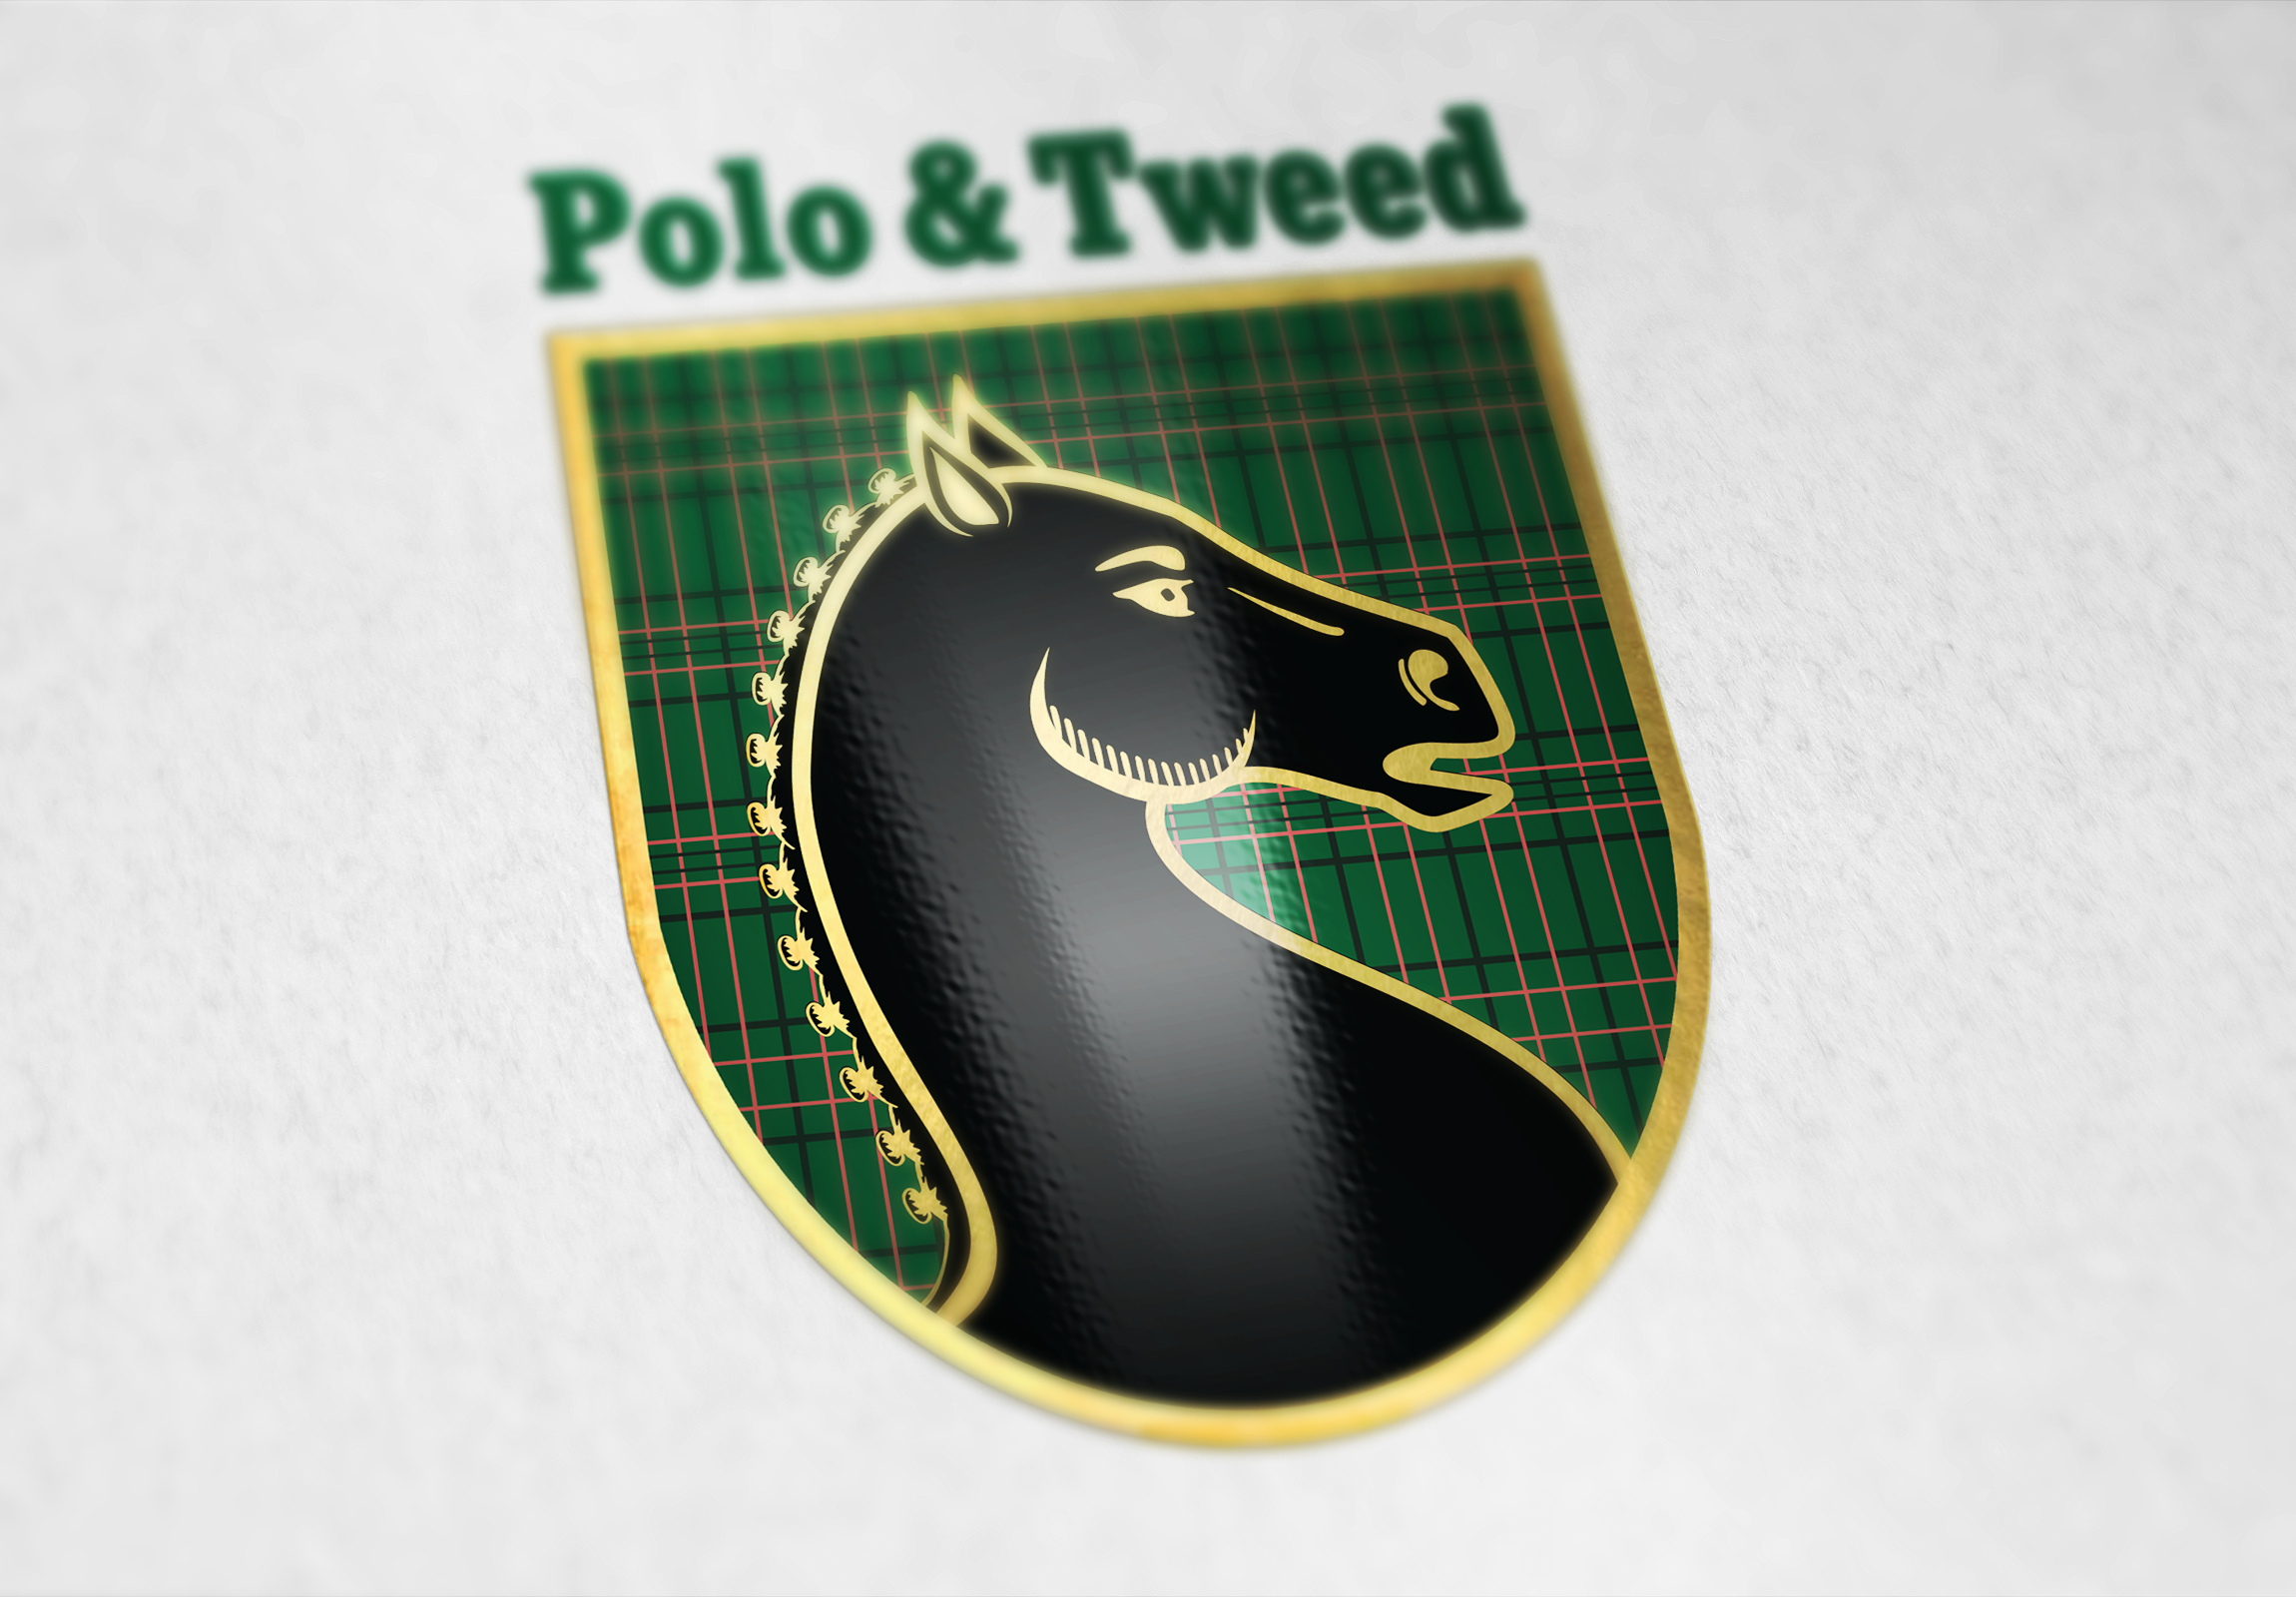 polo and tweed domestic recruitment and training agency